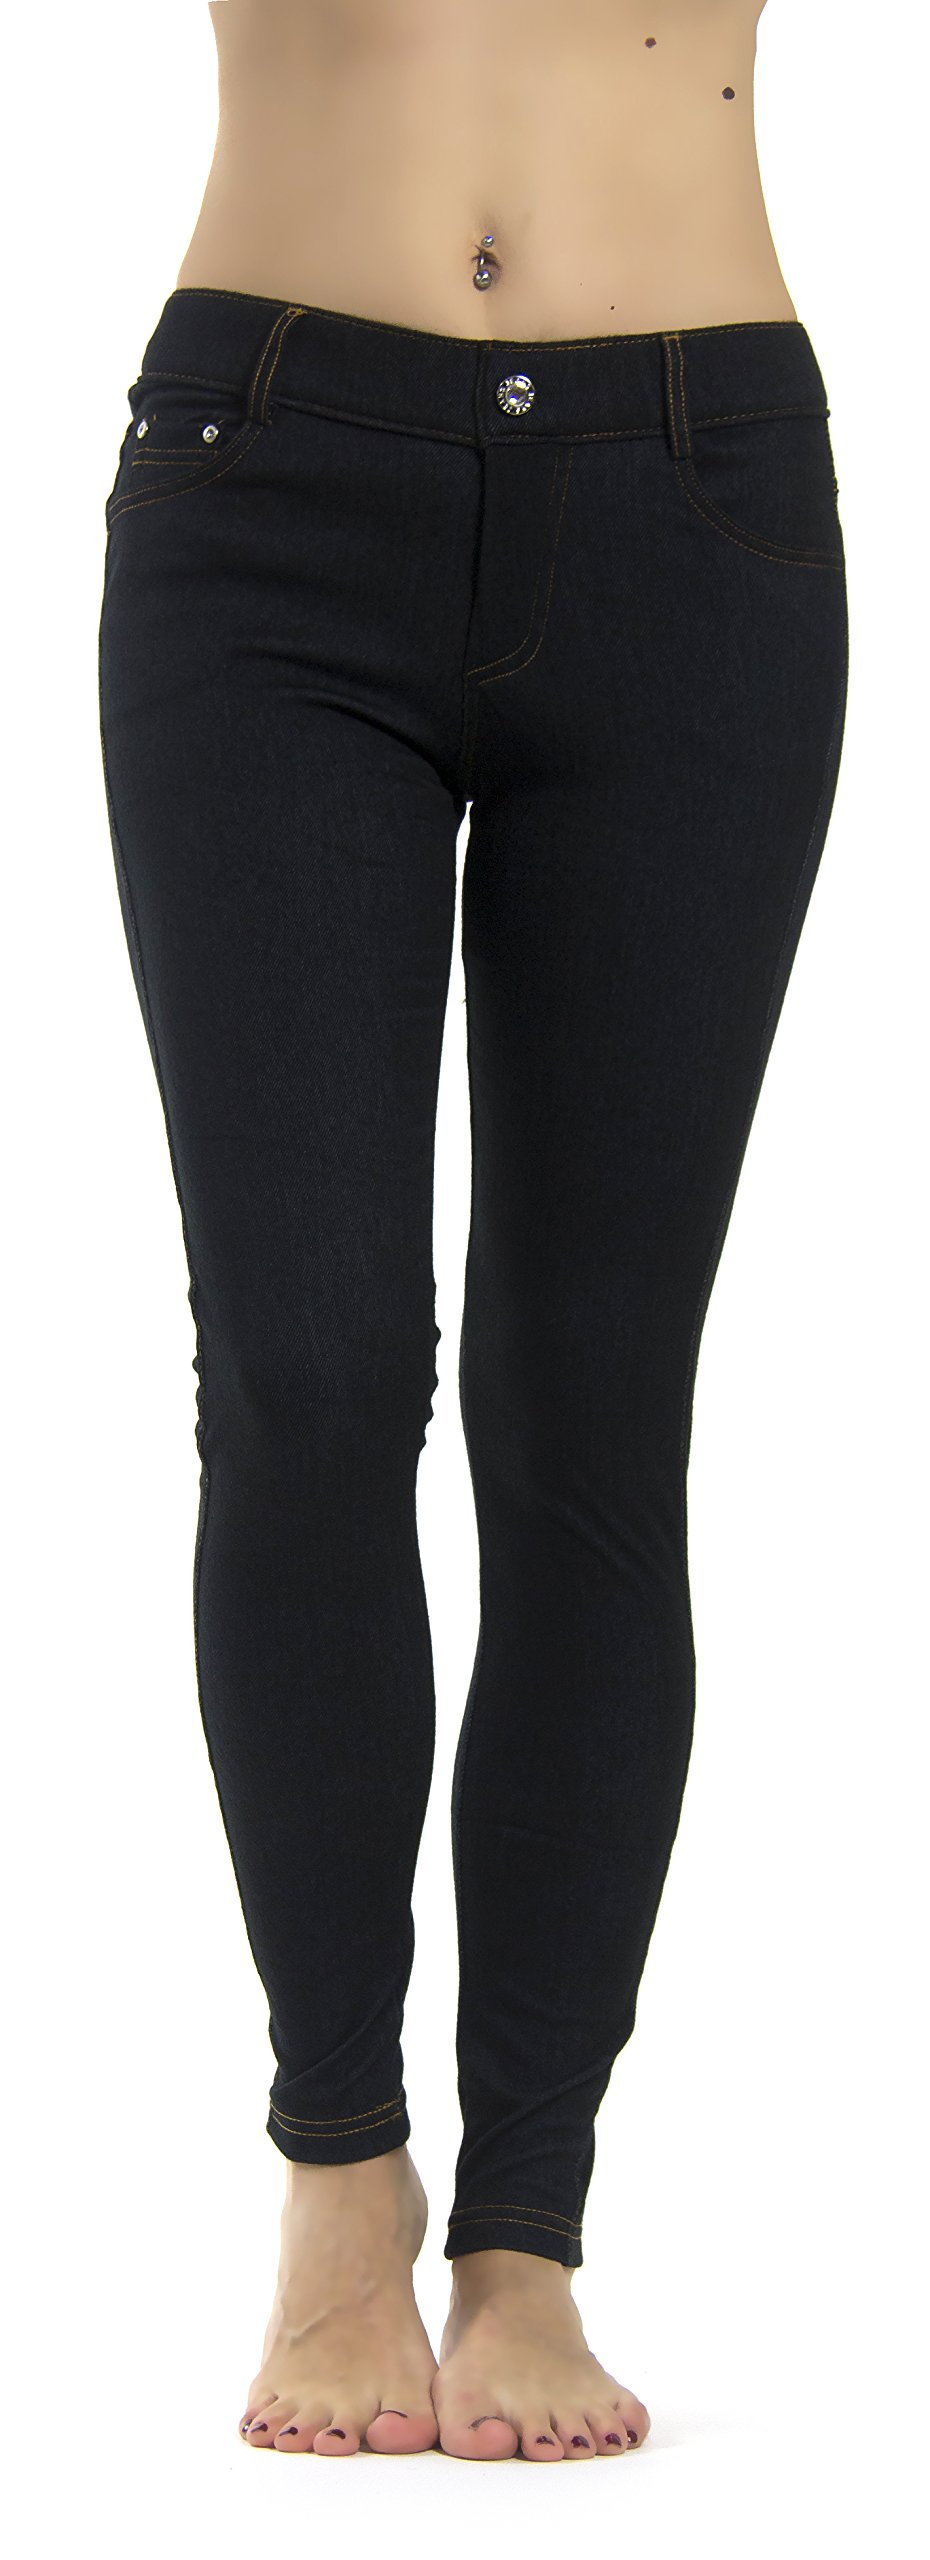 Prolific Health Women's Jean Look Jeggings Tights Slimming Many Colors Spandex Leggings Pants S-XXXL (Large/X-Large, Black Denim) by Prolific Health (Image #2)